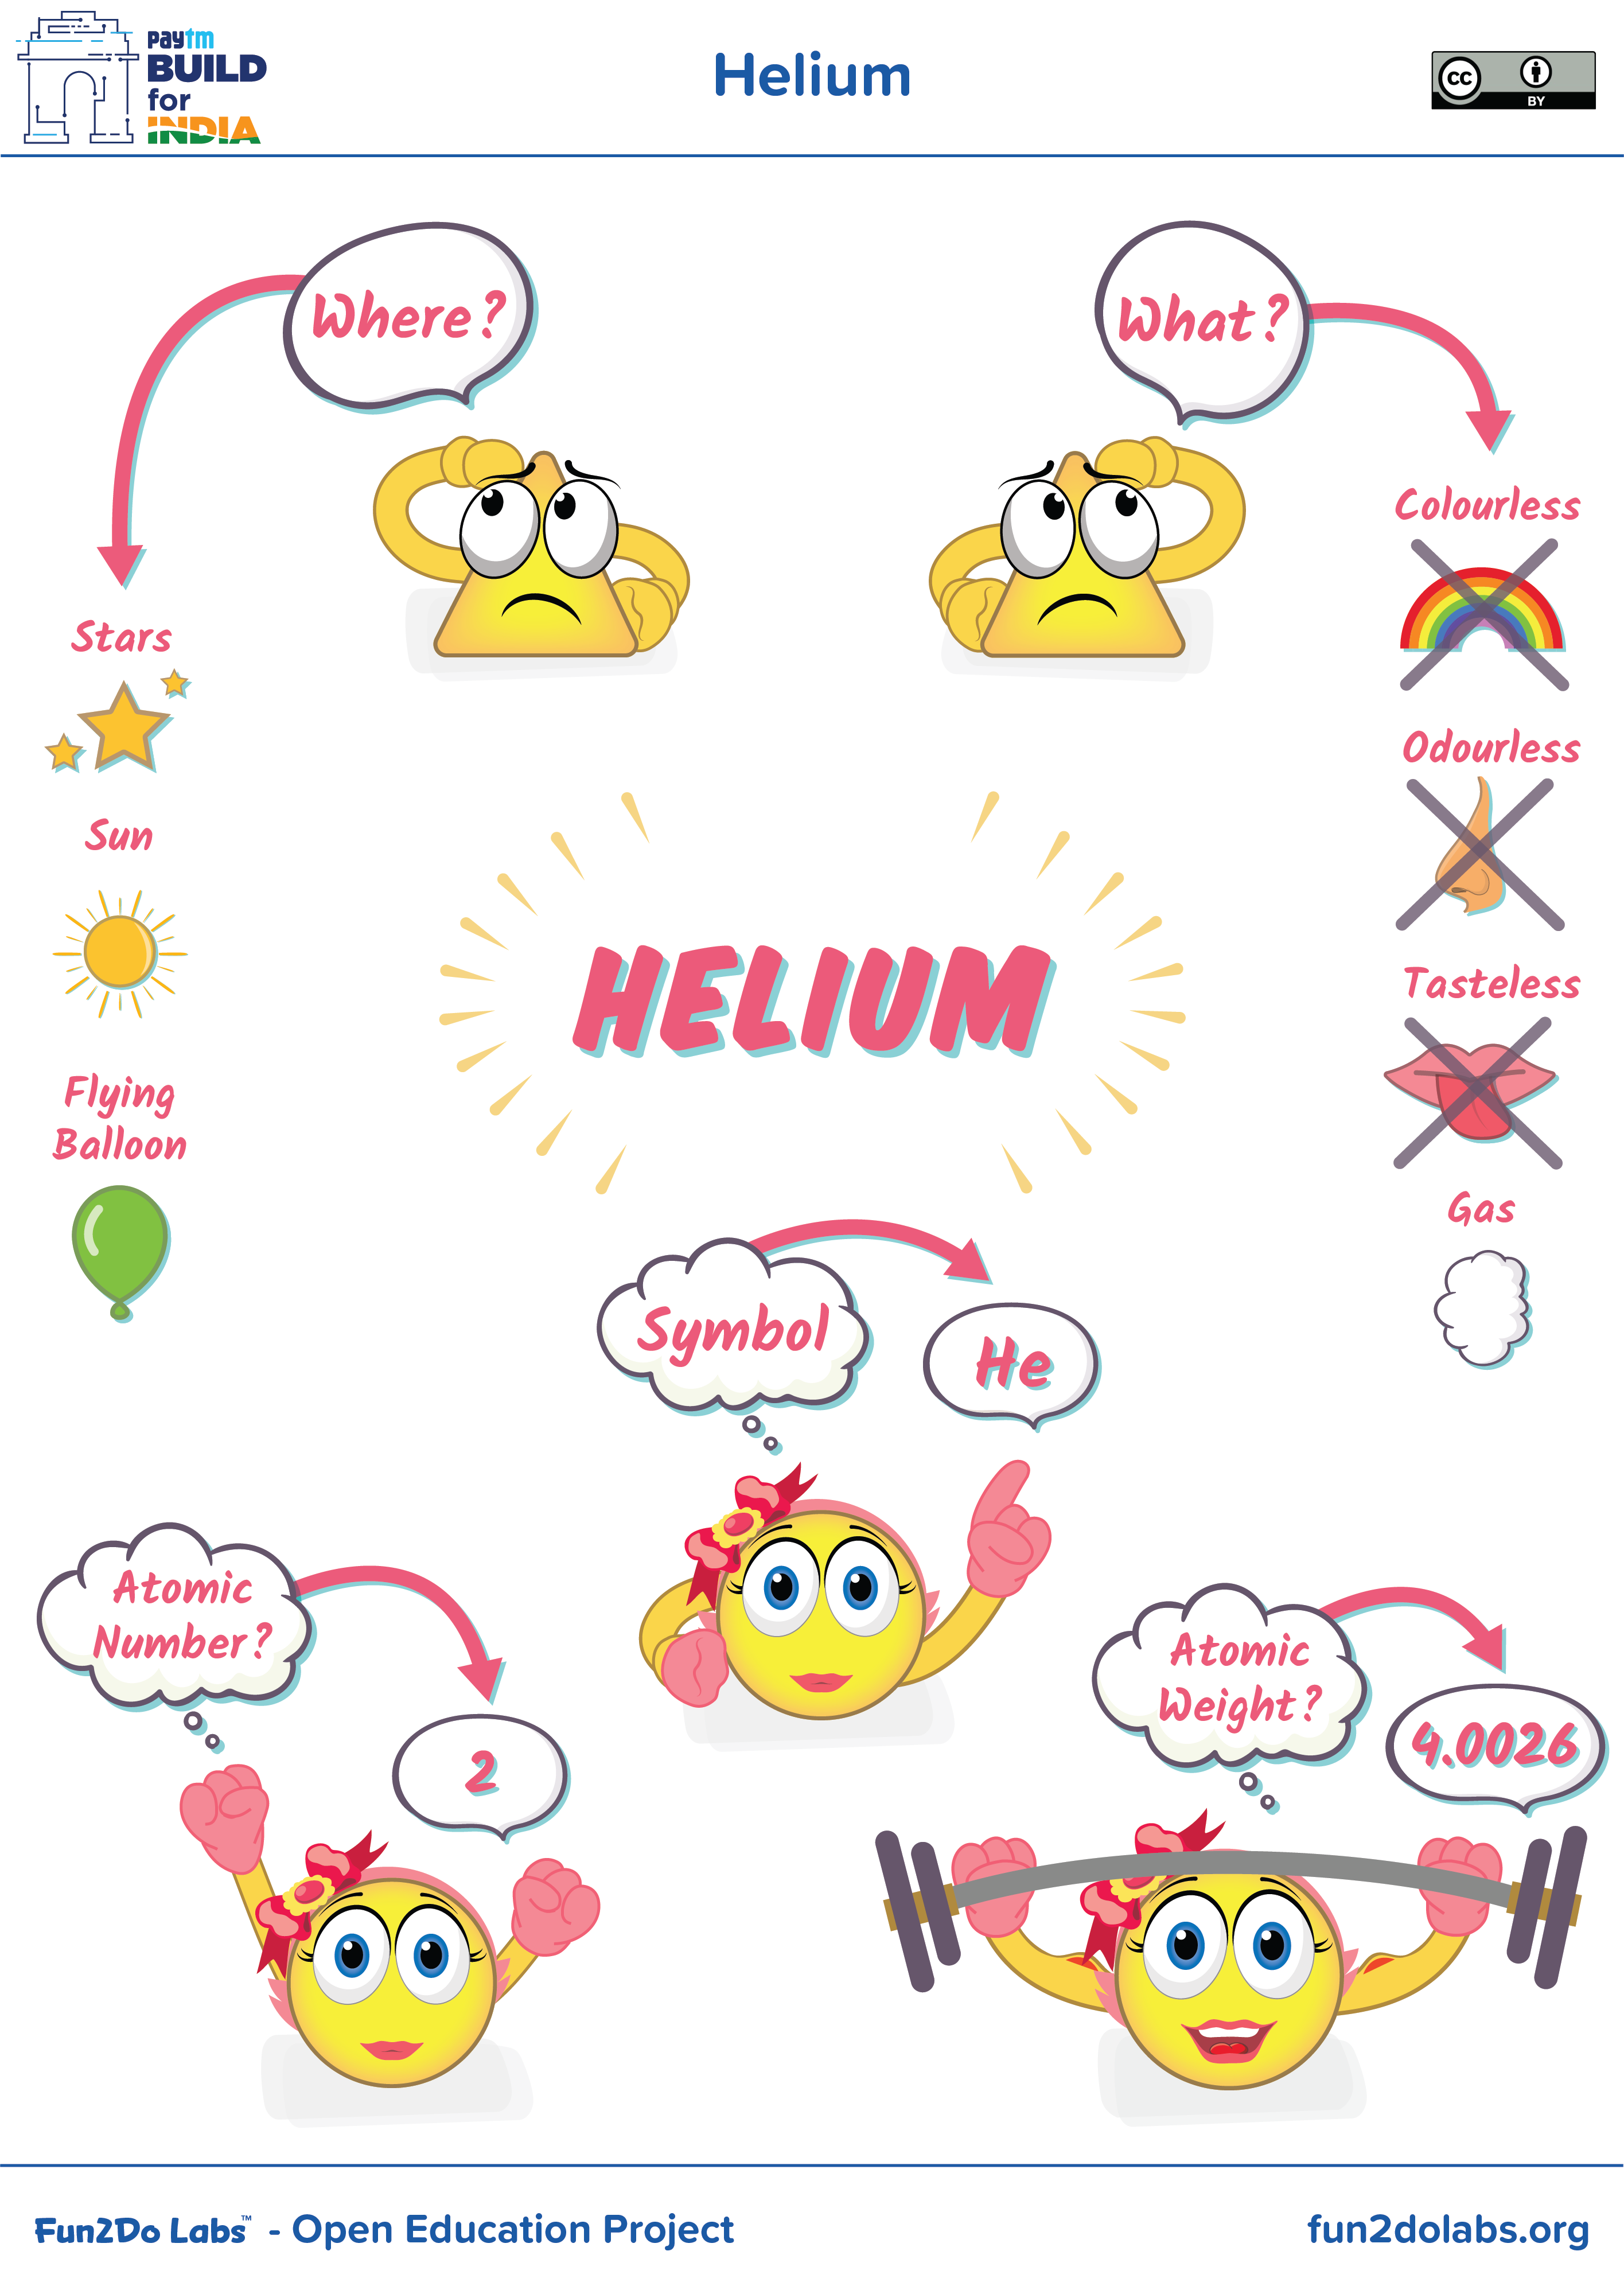 medium resolution of you can use this image for introducing helium to kids where is helium found what is helium atomic symbol of helium atomic number of helium